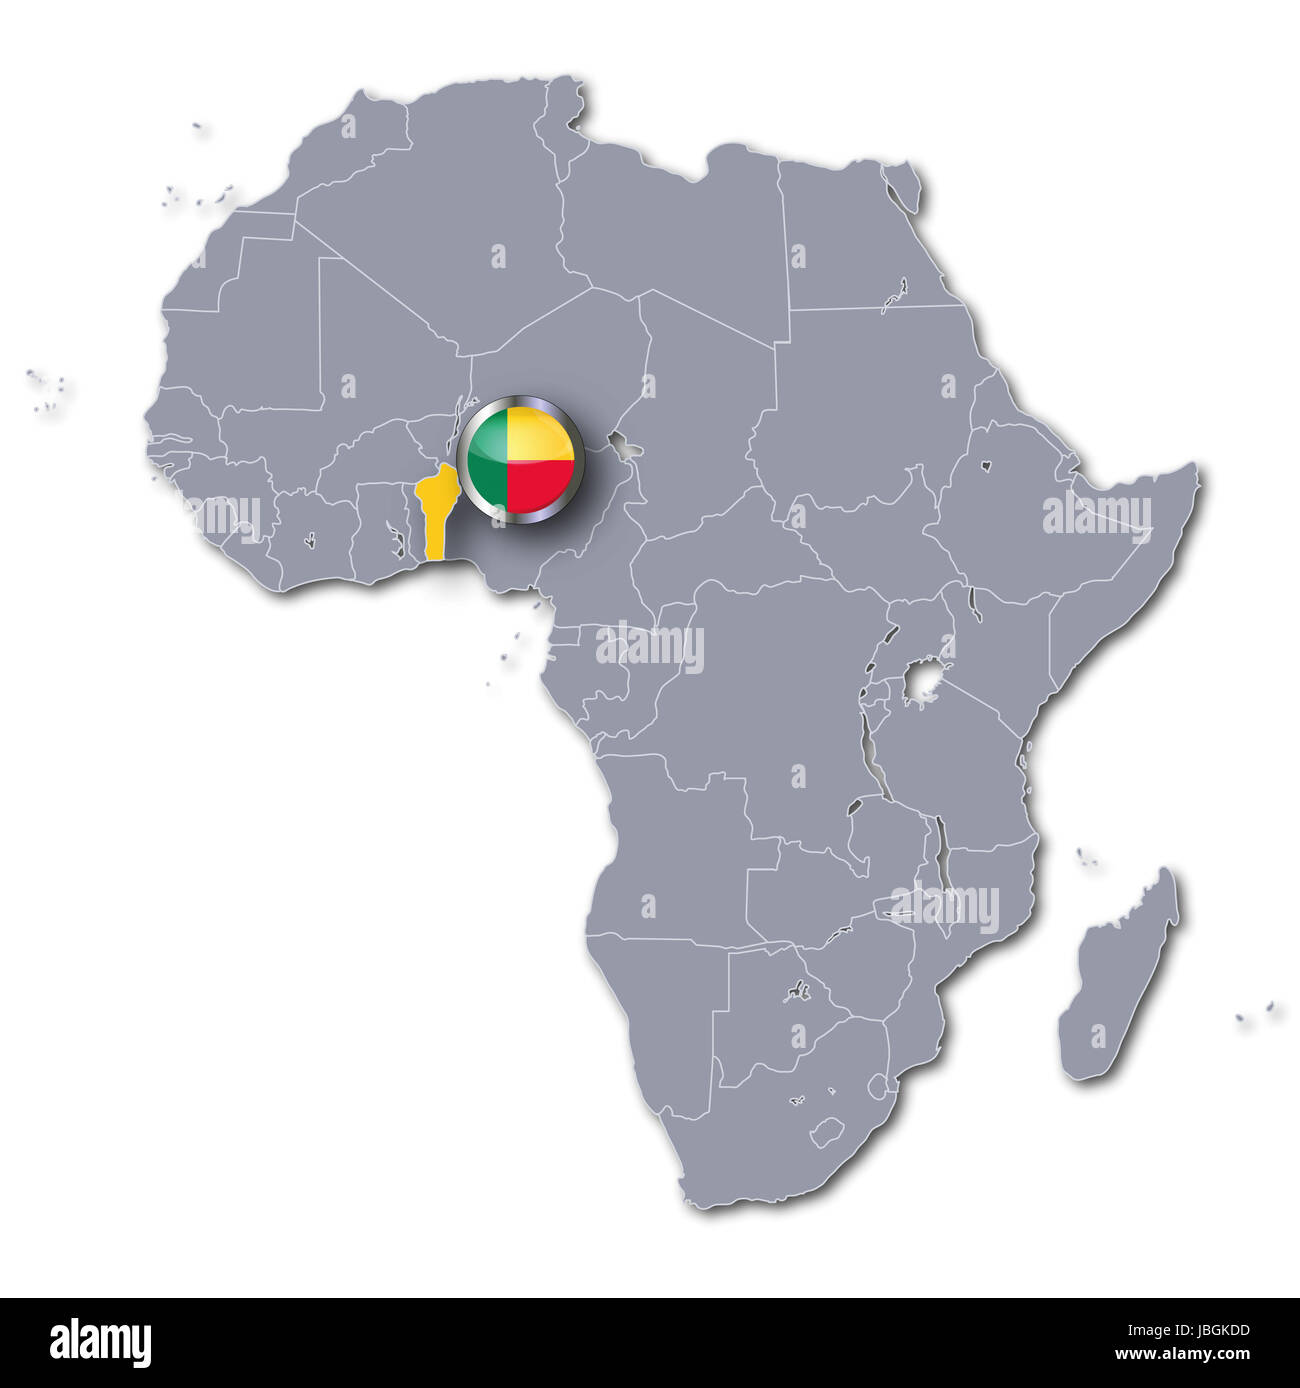 Benin Map In Africa.Africa Map Of Benin Stock Photo 144810665 Alamy